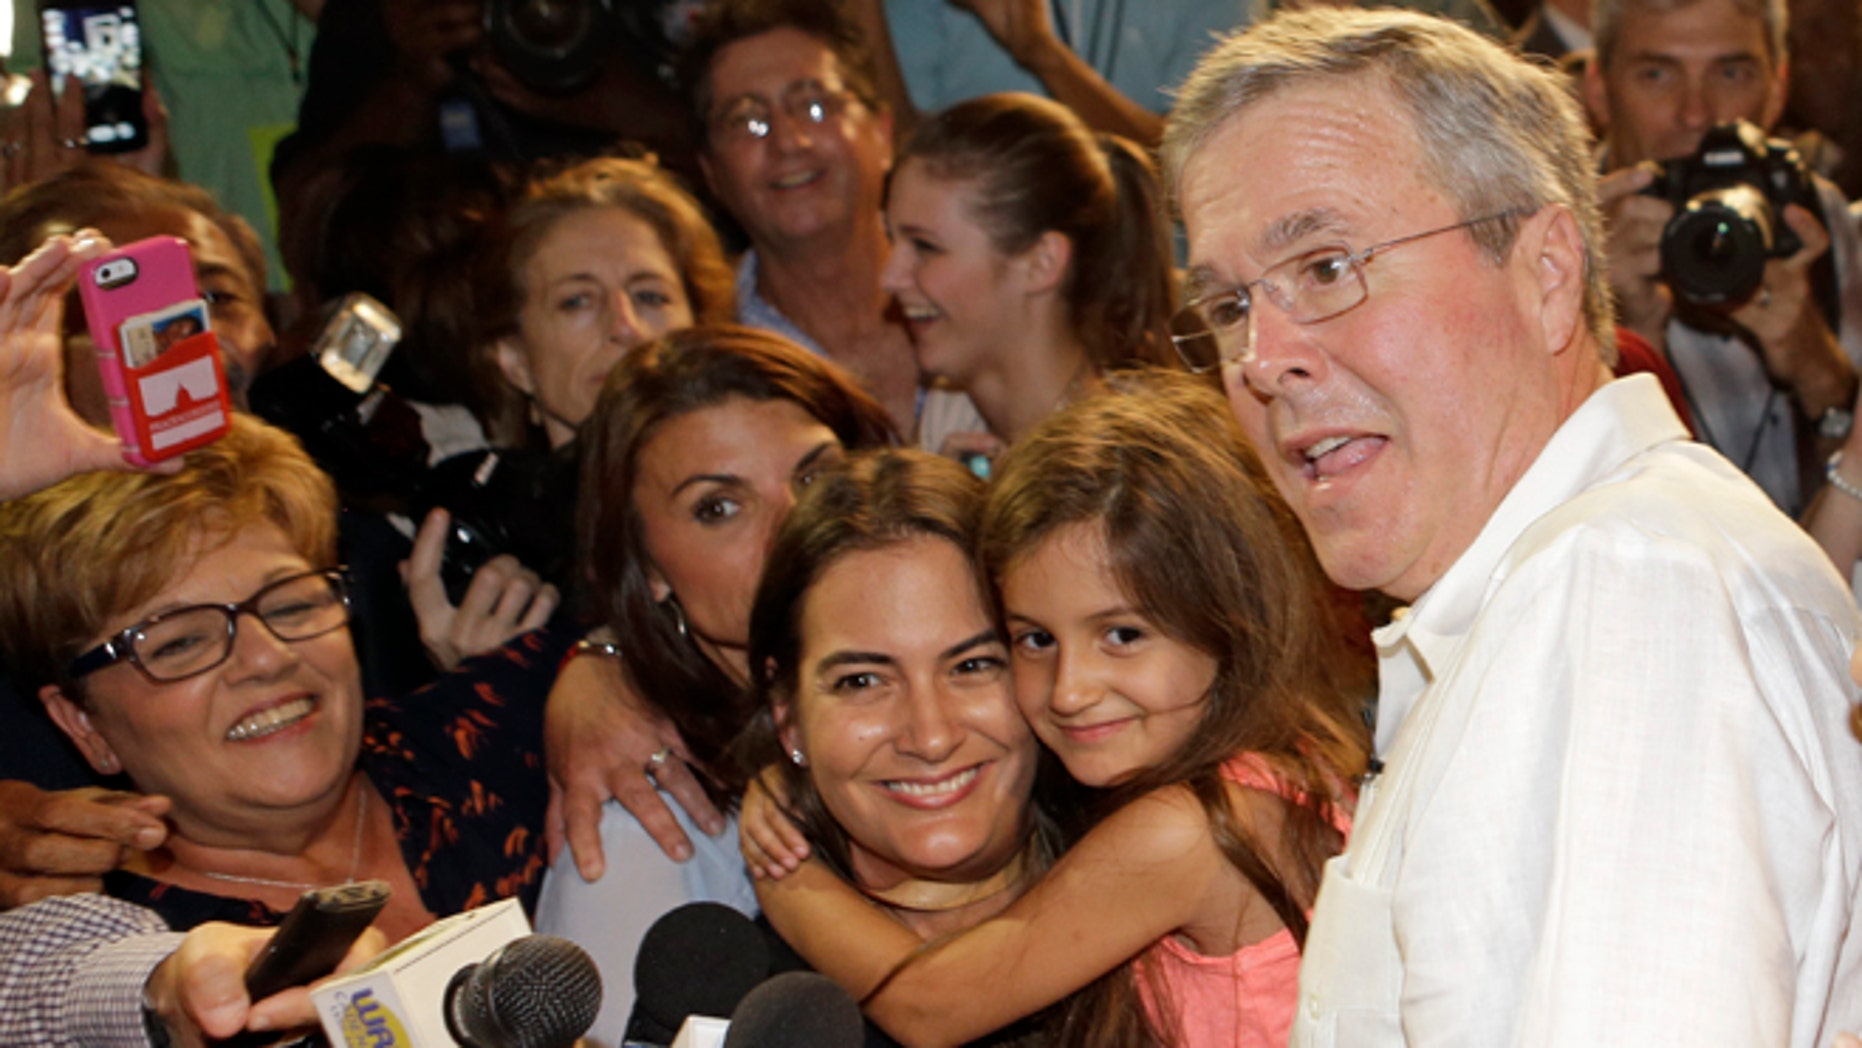 Former Florida Gov. Jeb Bush poses with supporters for photos during a fundraiser, Monday, May 18, 2015, in Sweetwater, Fla. (AP Photo/Alan Diaz)